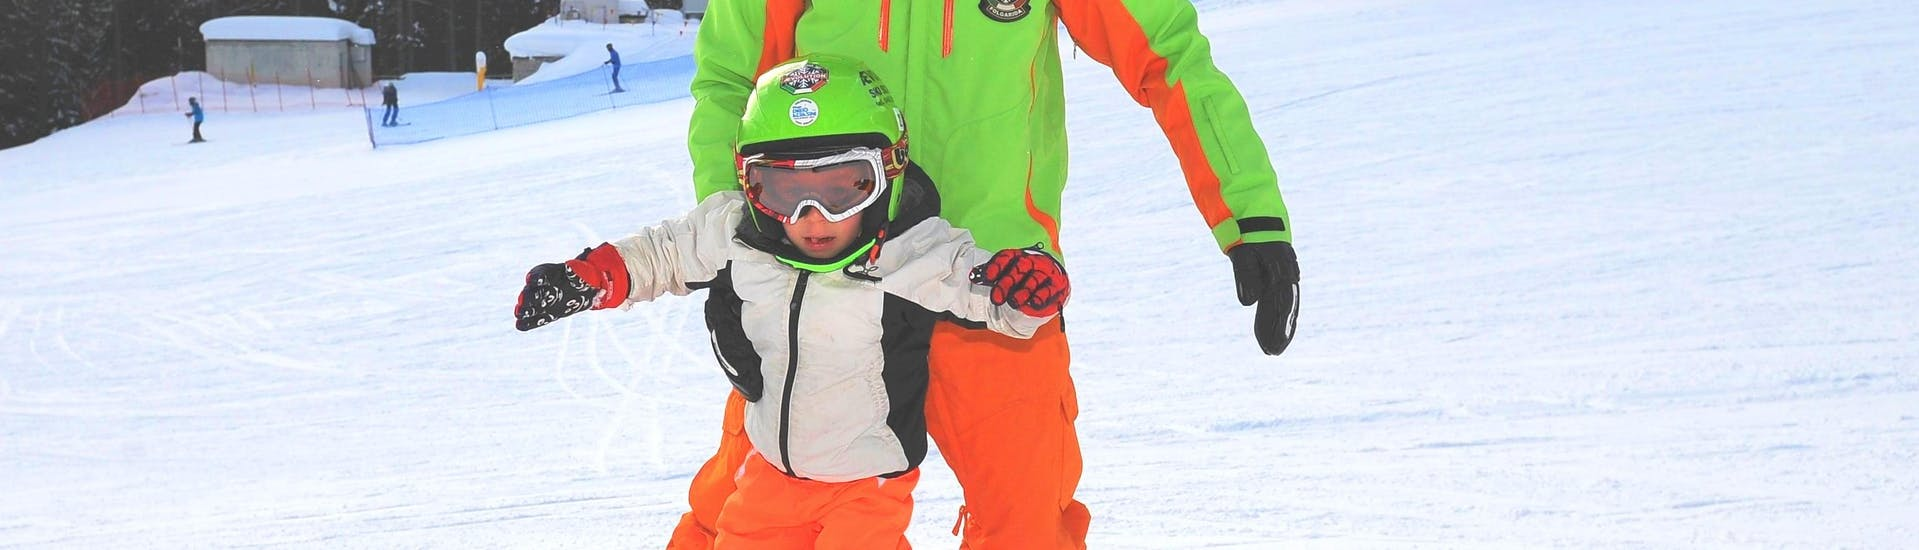 The rivate Snowboarding Lessons for Kids & Adults - All Levels have just started and the snowboard instructor of the Ski School Scuola di Sci Aevolution Folgarida is helping a child to maintain his balance.